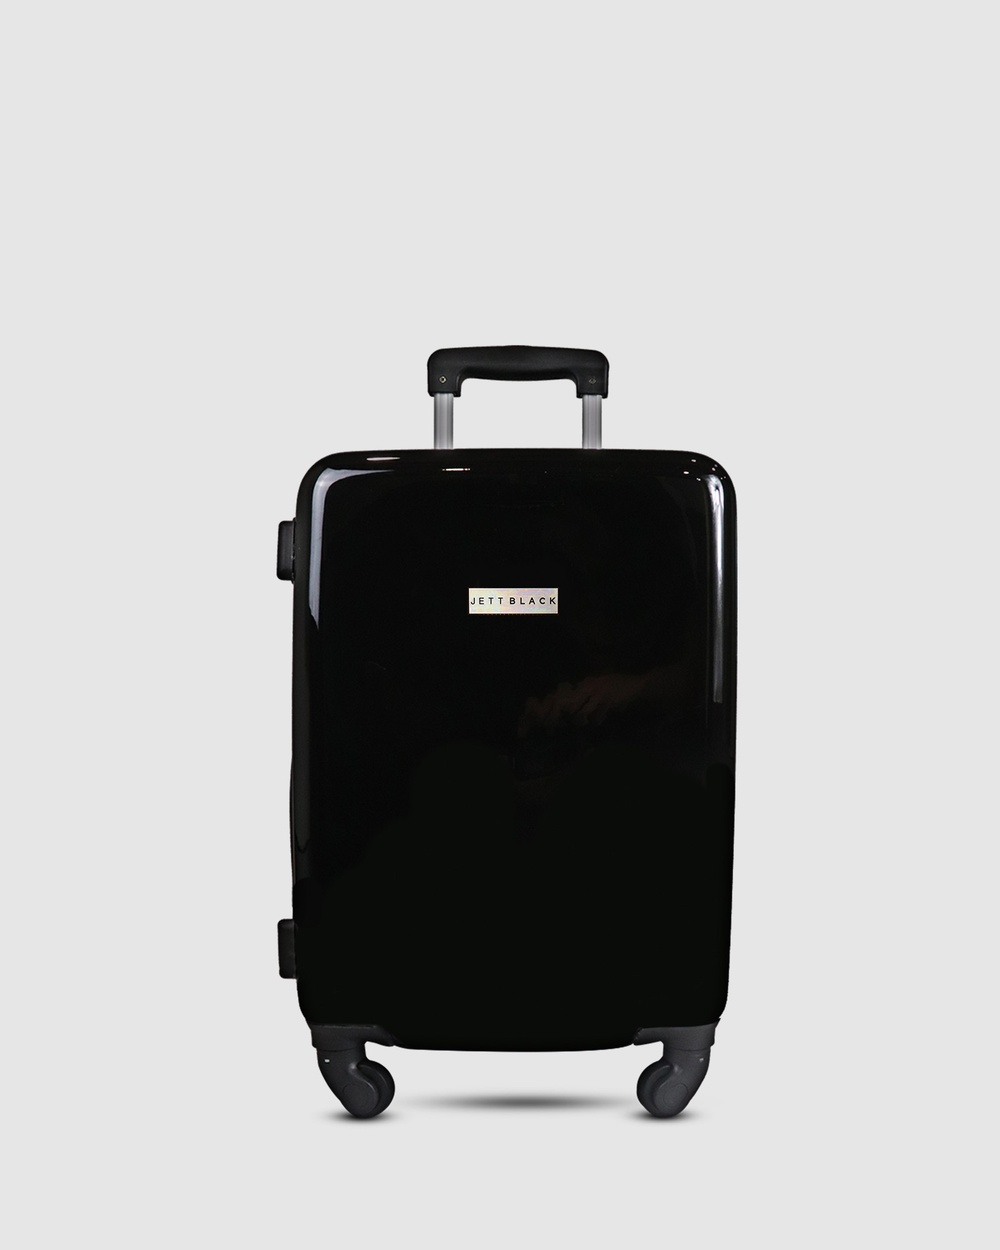 JETT BLACK My JB Series Carry On Suitcase Travel and Luggage Black